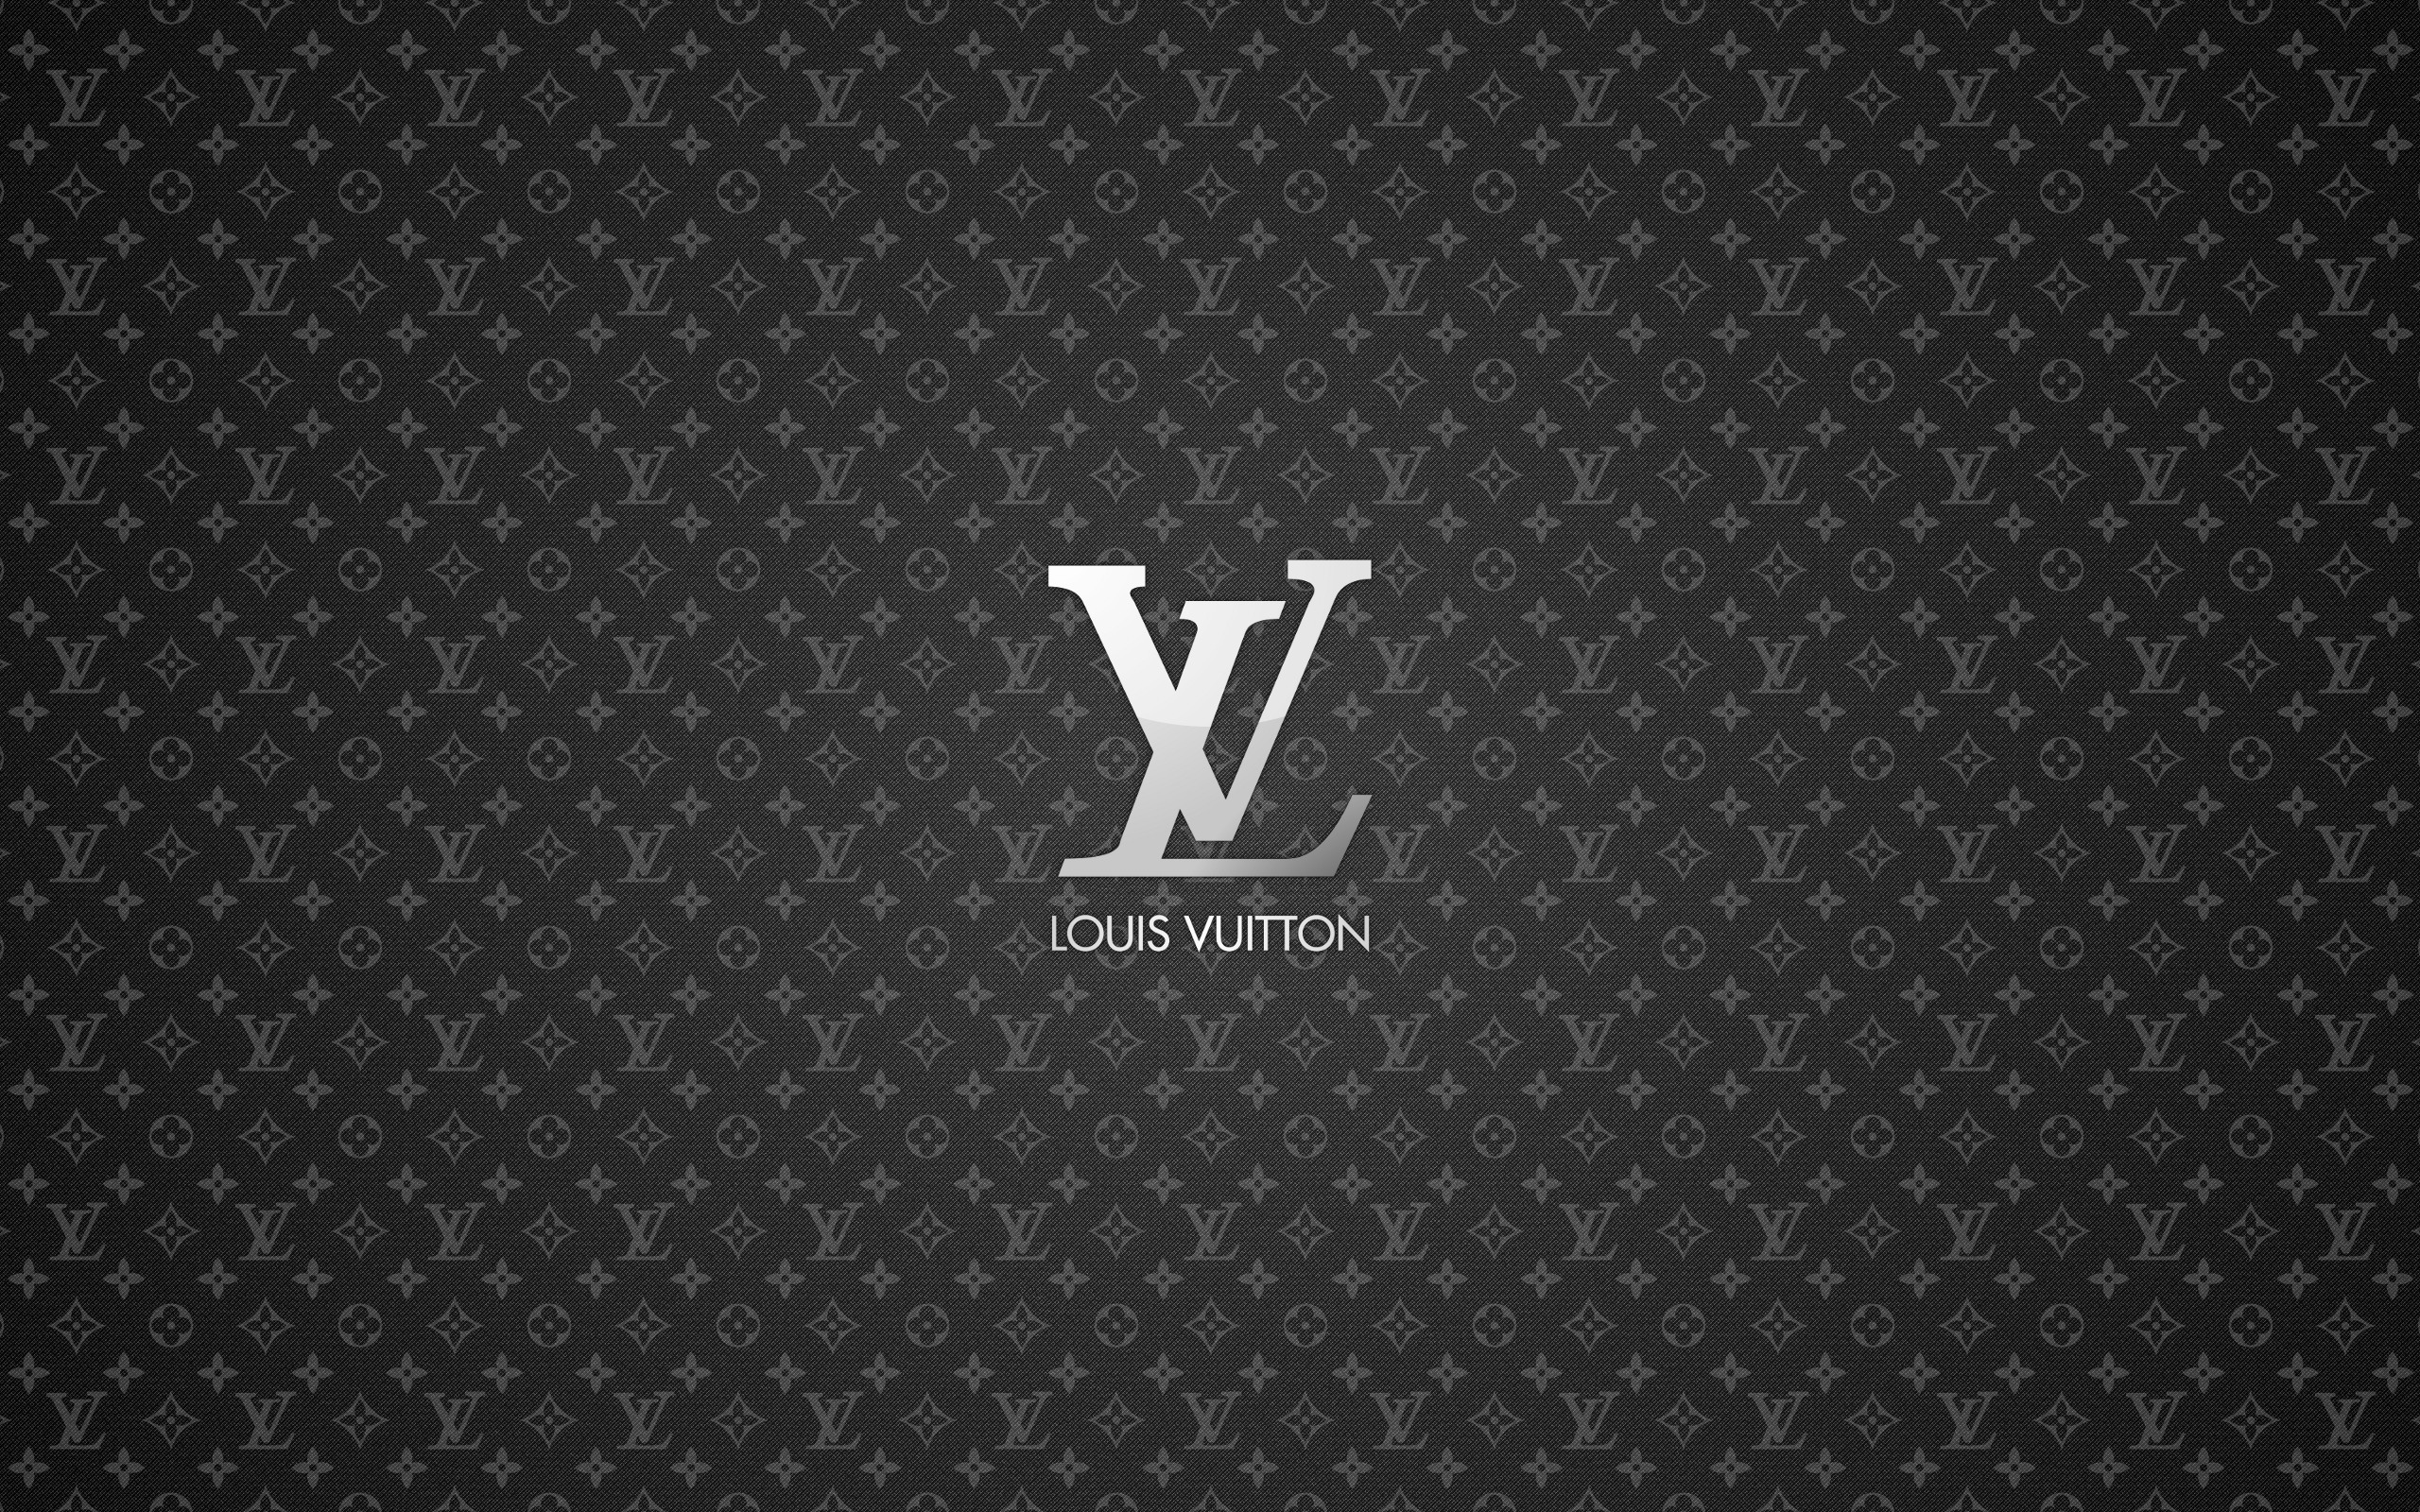 Louis Vuitton Wallpaper Iphone X Louis Vuitton Full Hd Fond D 233 Cran And Arri 232 Re Plan